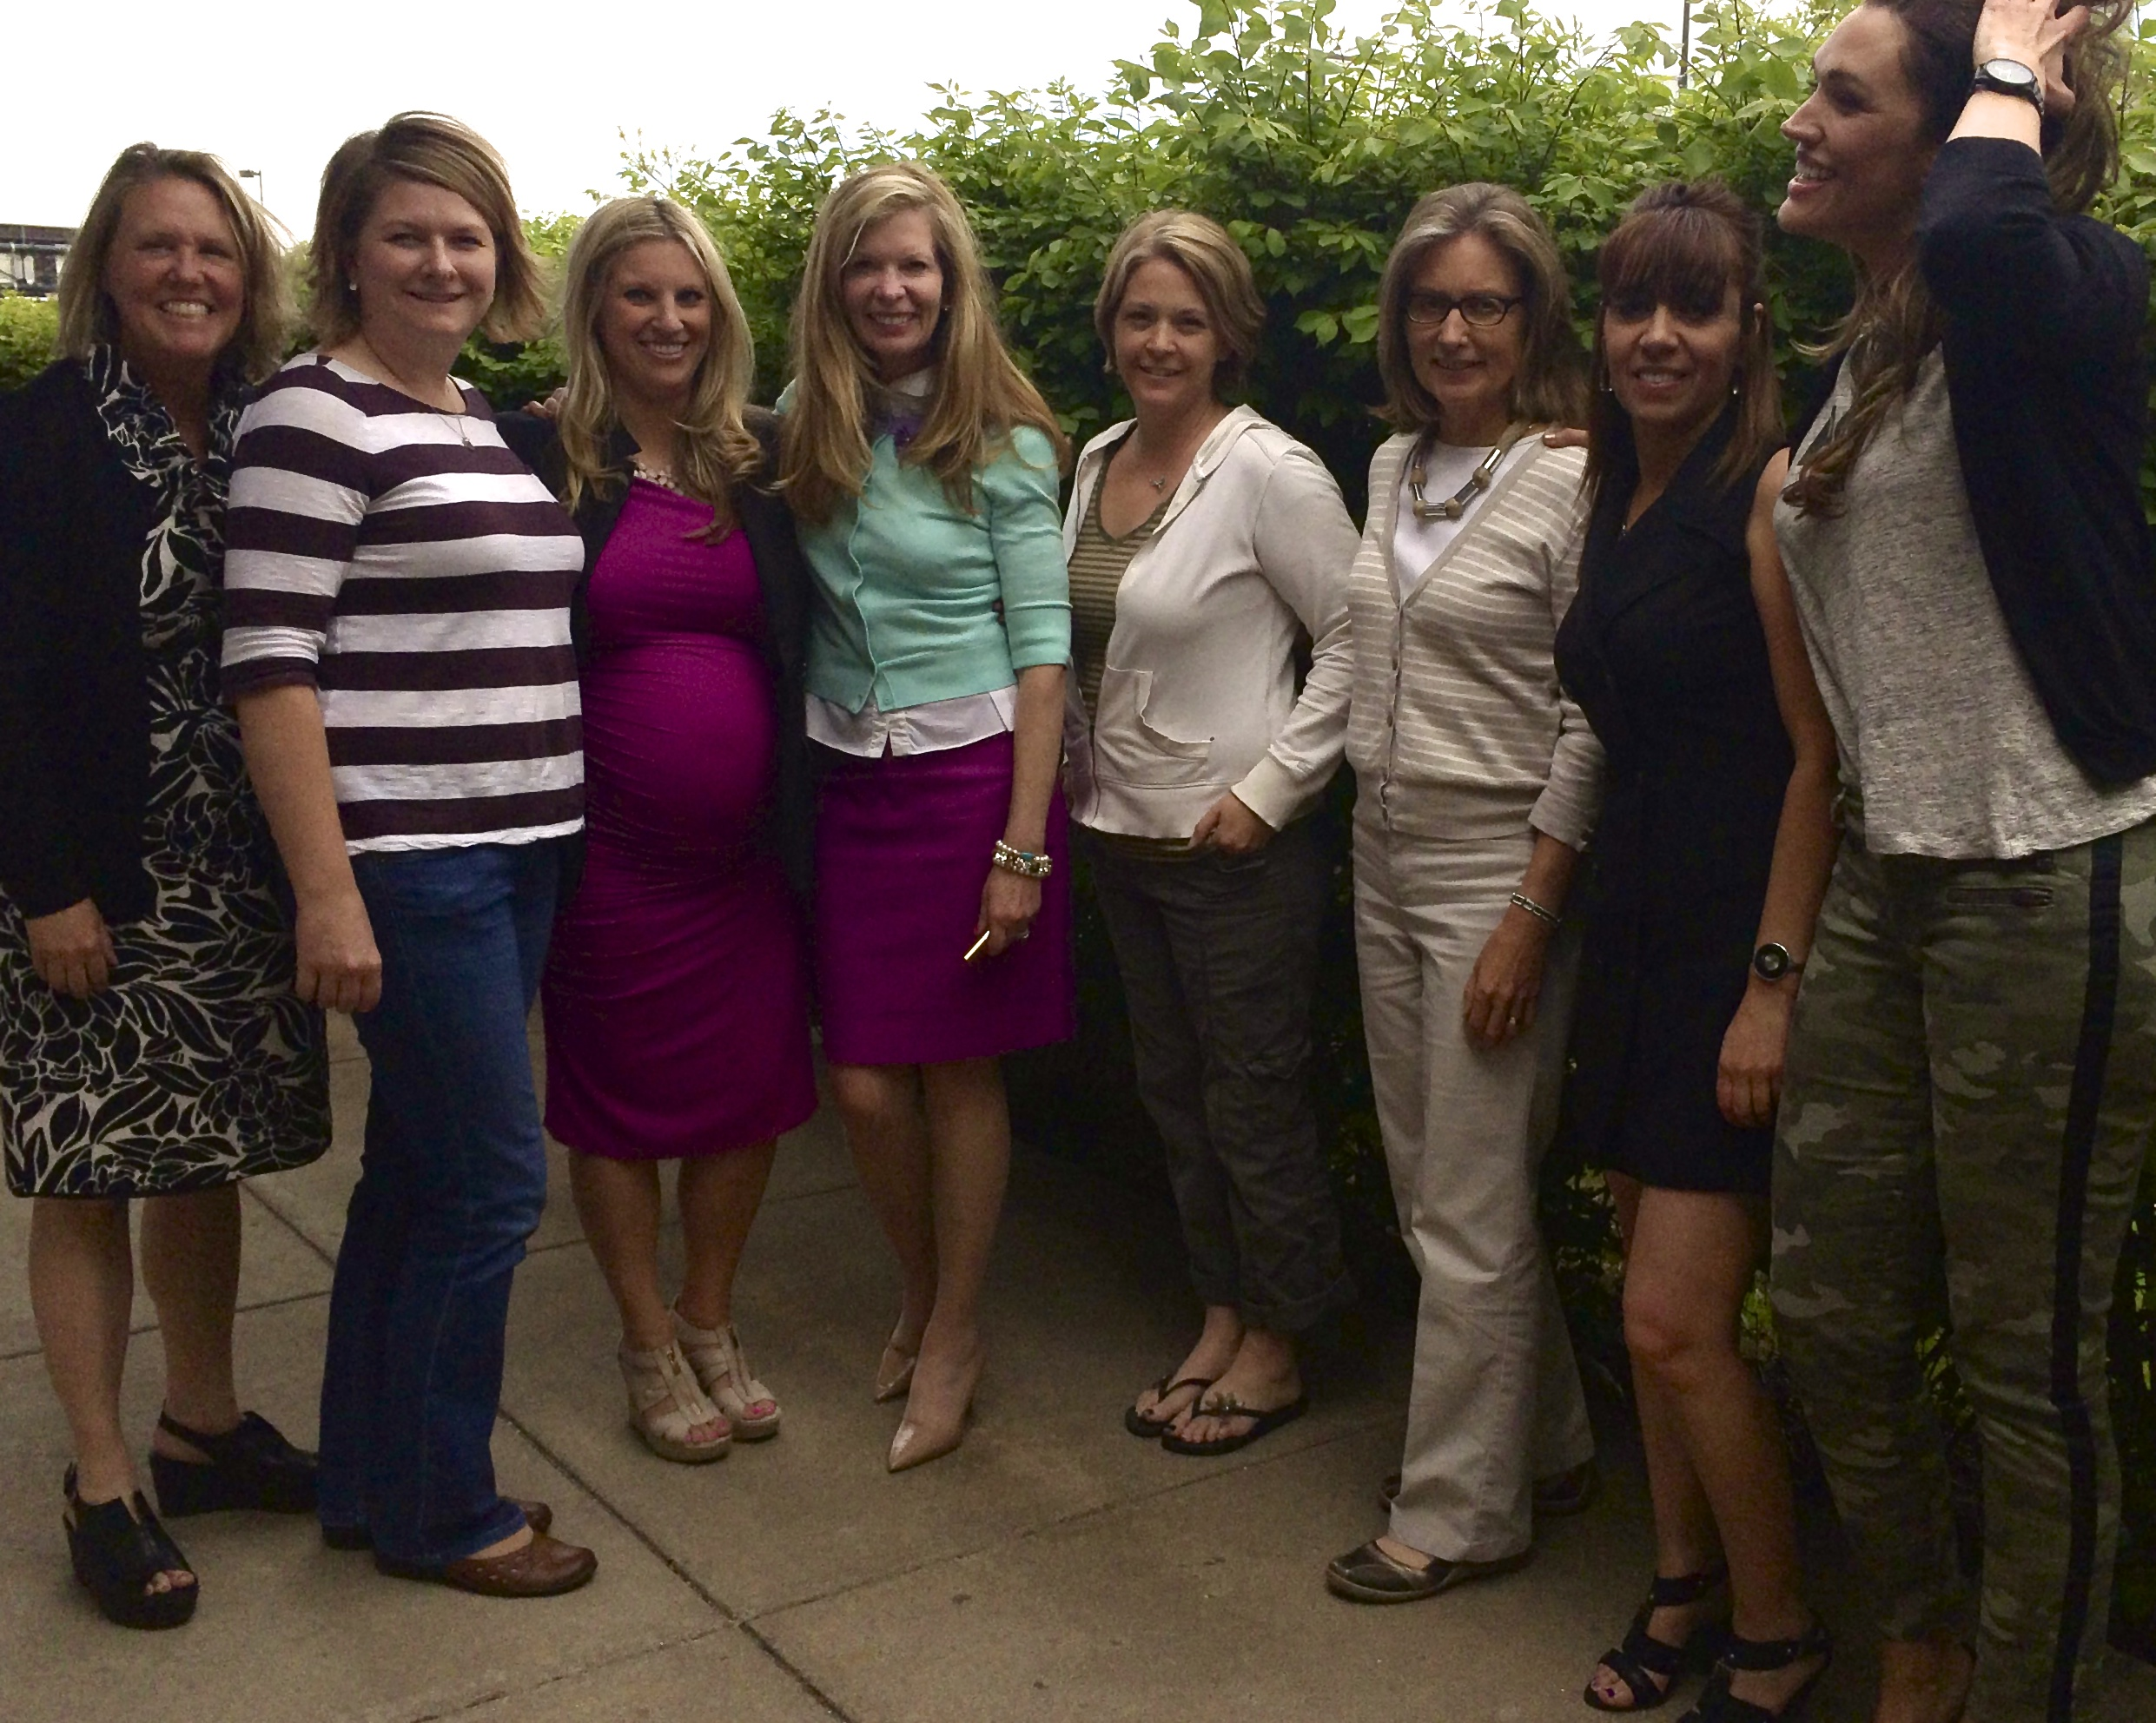 KH Moms Meg, Karen, Caitlin (soon to be!), Kathy, Jen, Bonnie, Raygina, Rachael [not pictured: Charlotte and Tracy]